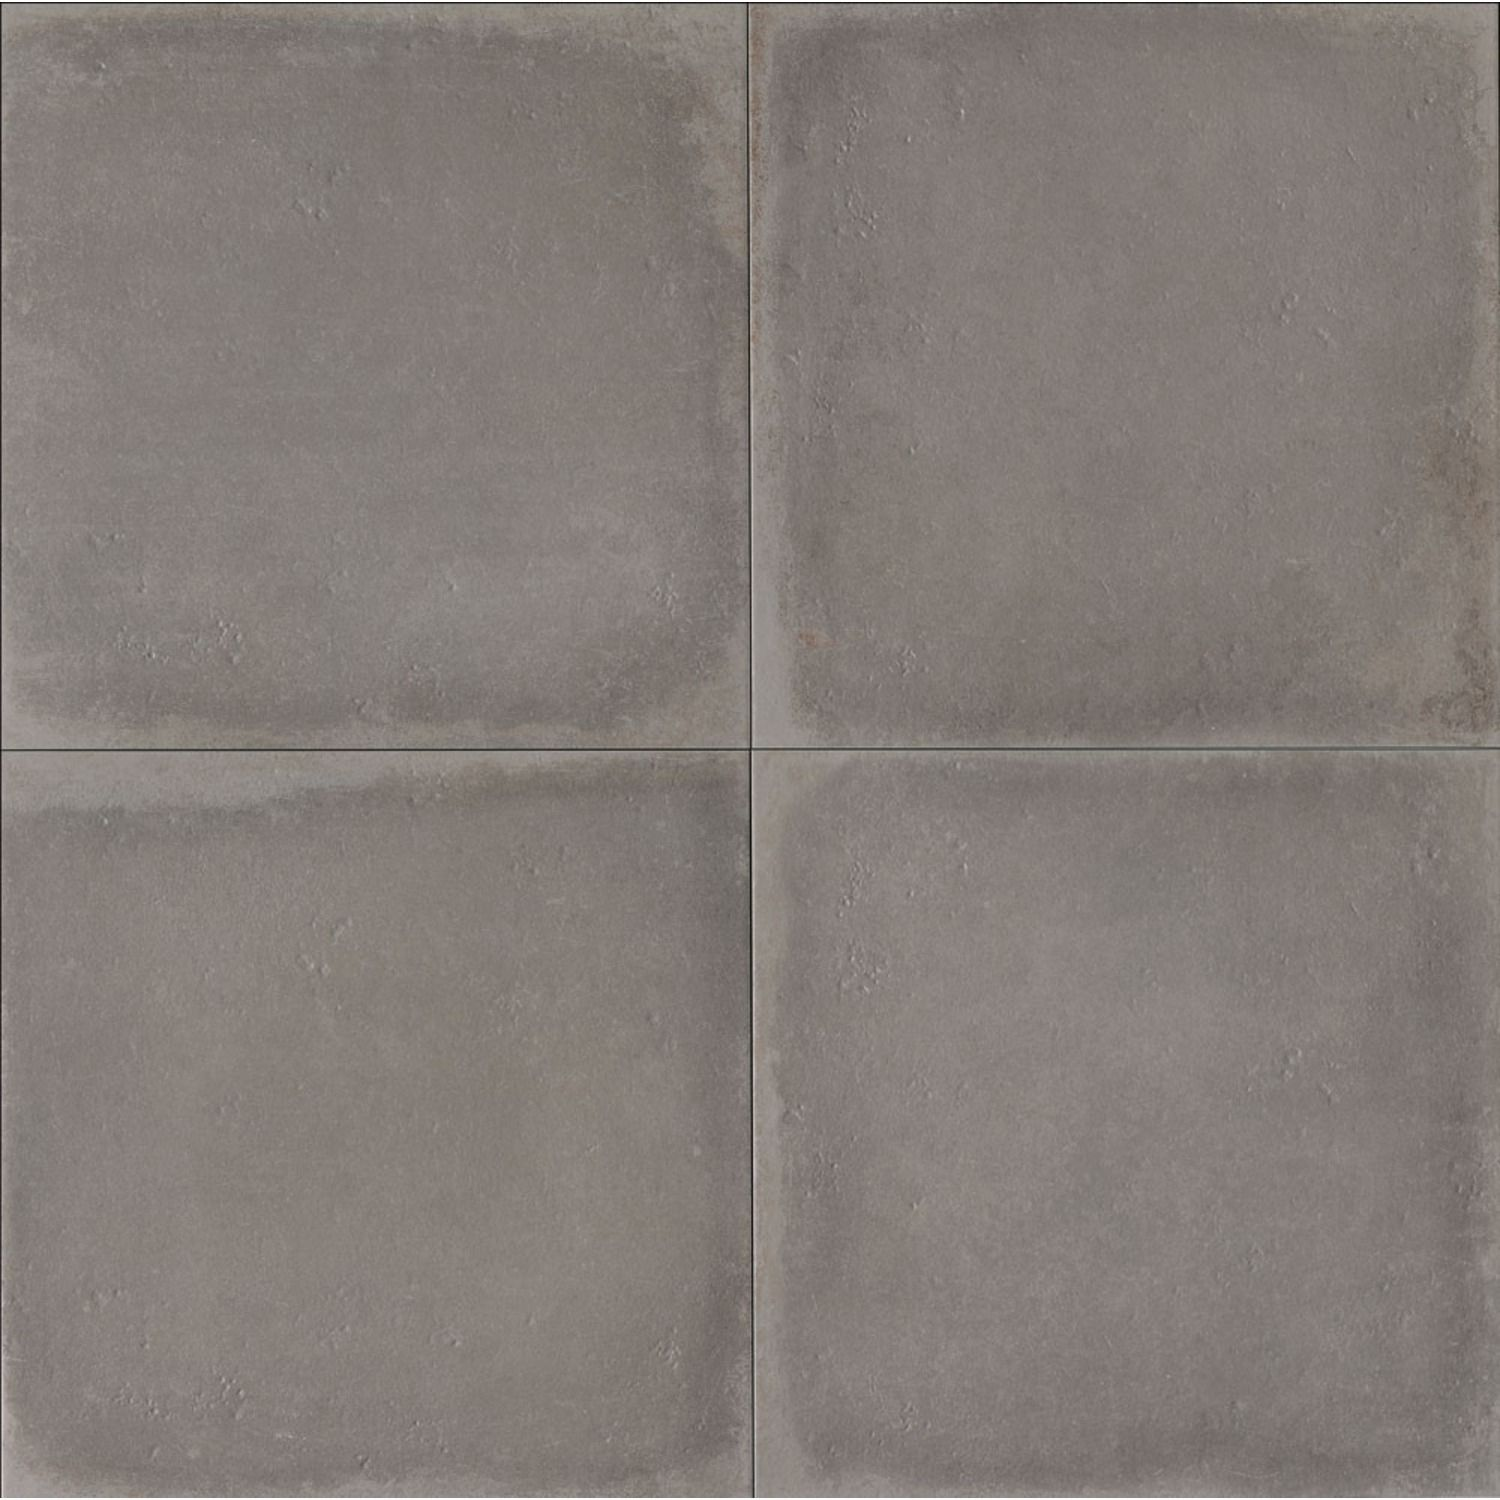 24x24 palazzo vintage grey patio pinterest palazzo x x grey palazzo tile is designed for commercial and residential use for floors walls countertops shower walls showers floors and pools dailygadgetfo Choice Image